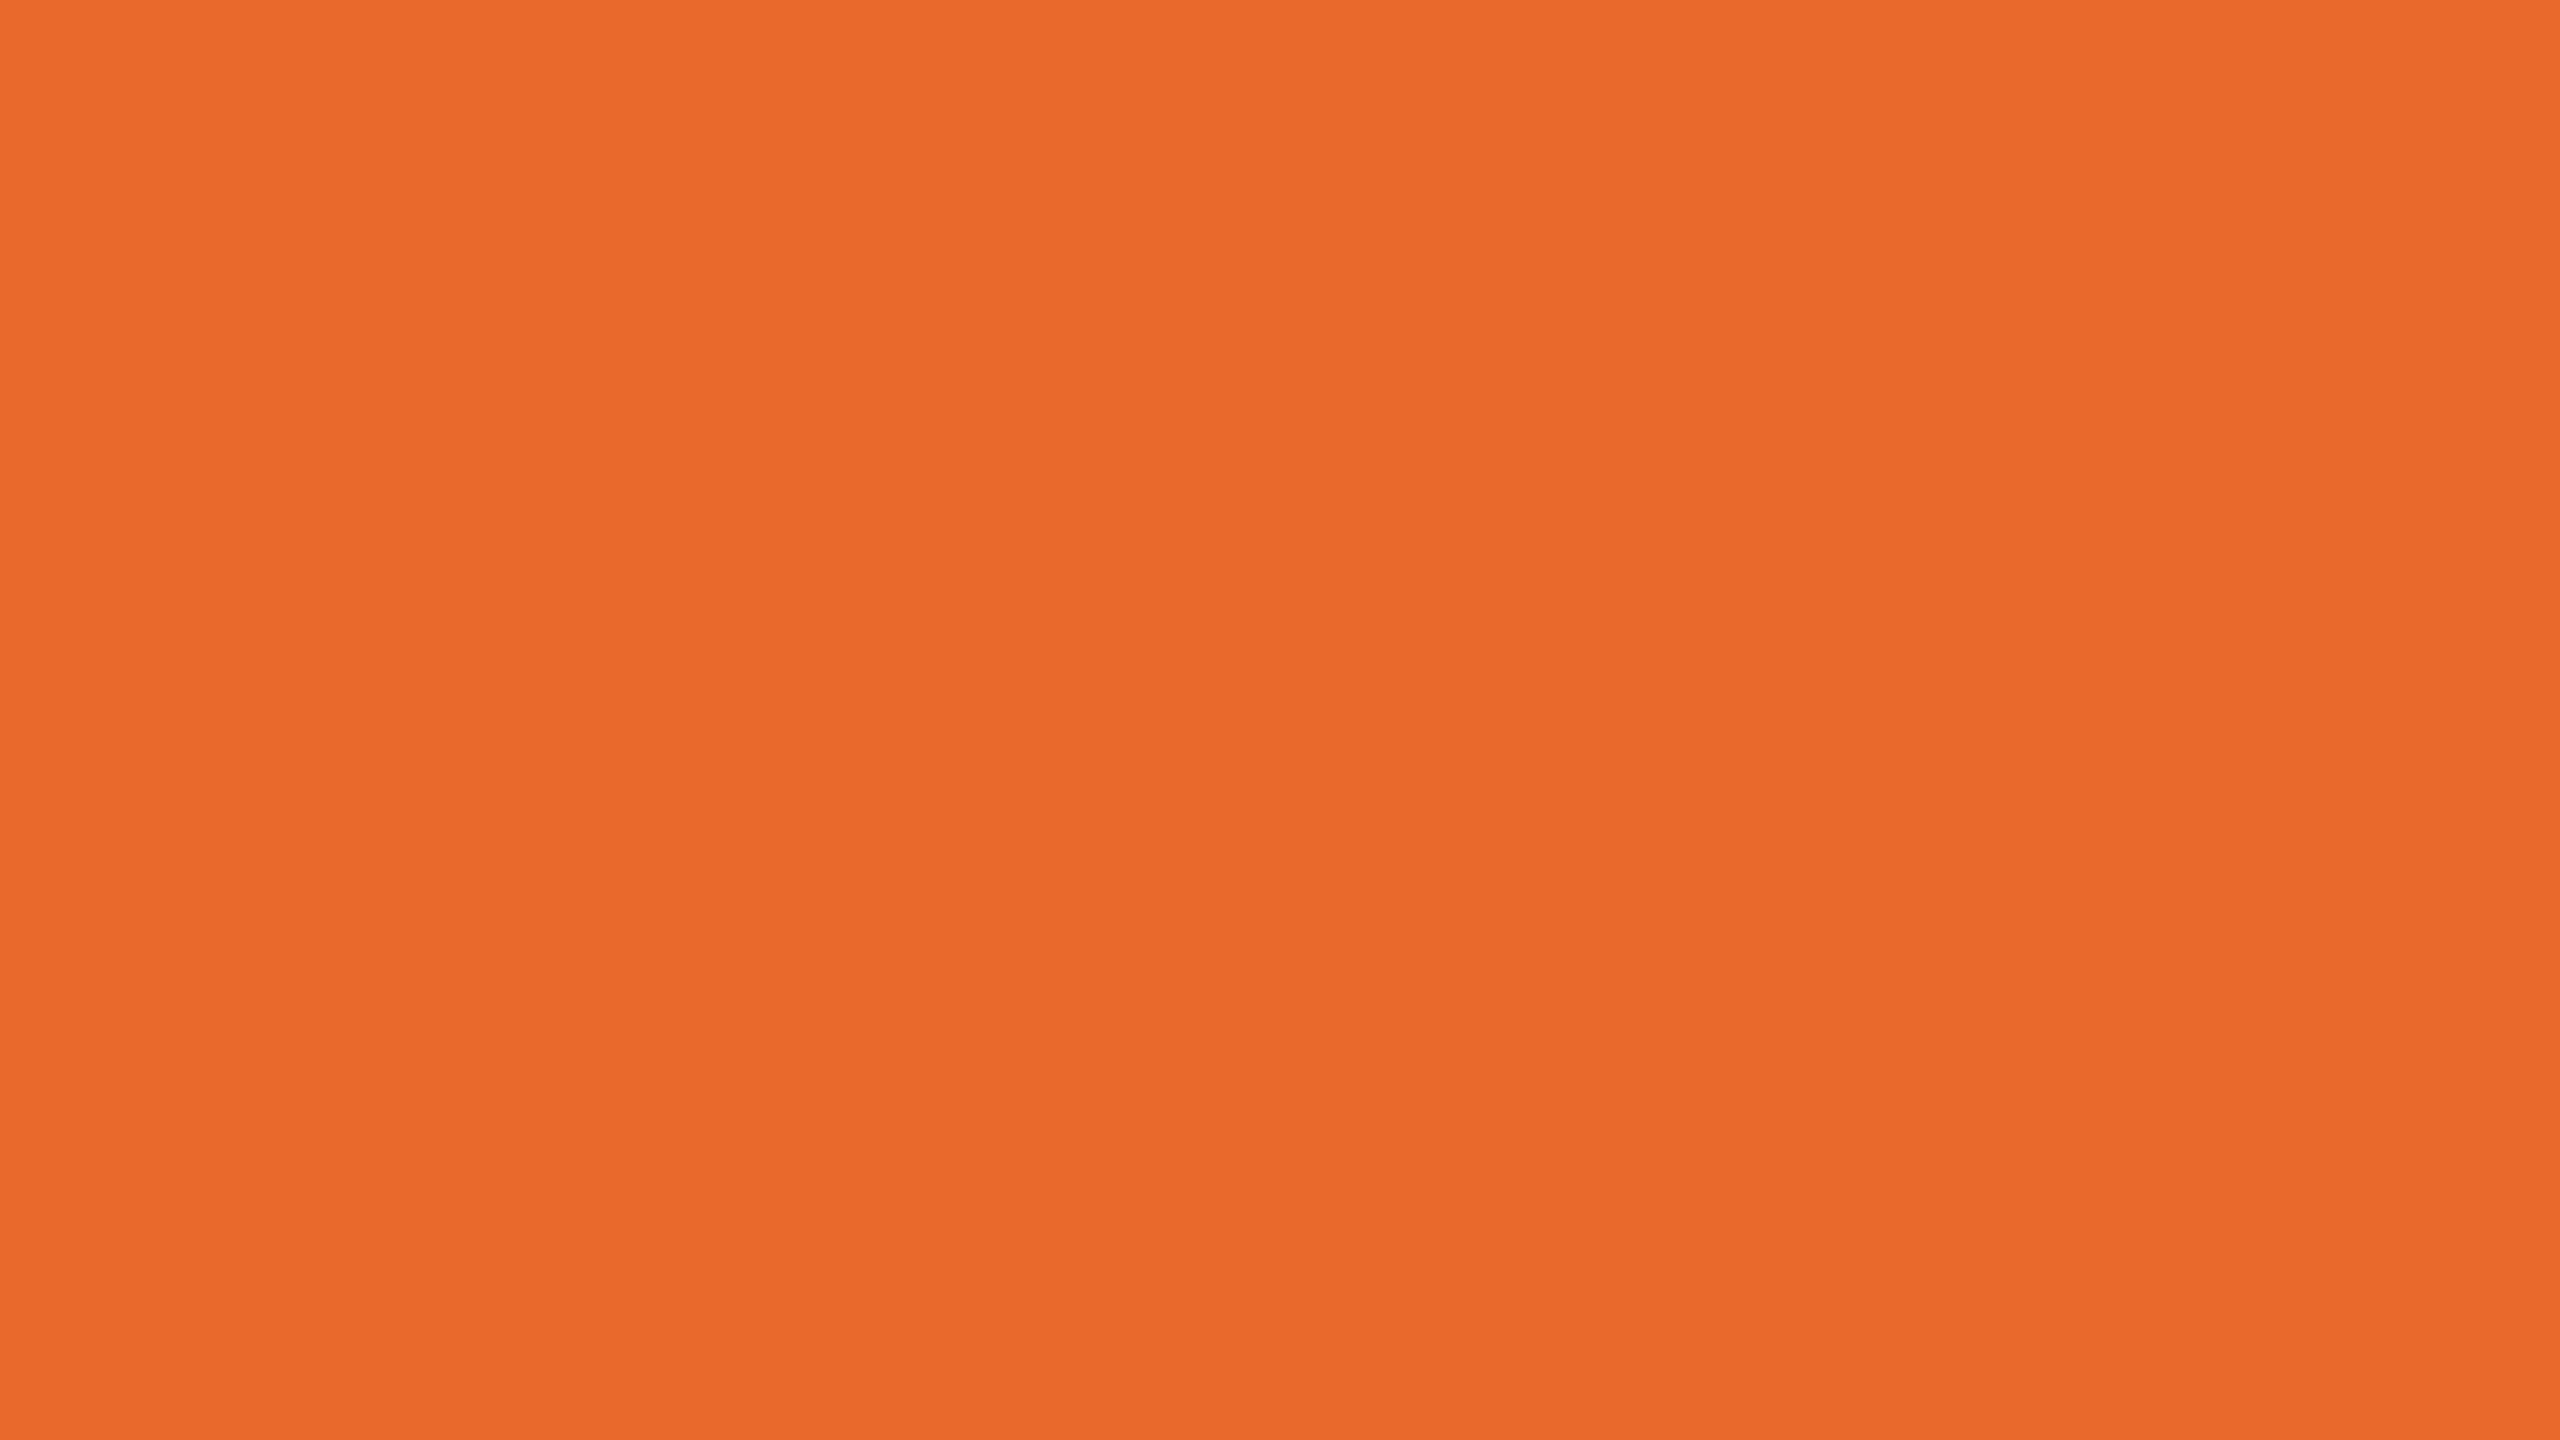 2560x1440 Deep Carrot Orange Solid Color Background